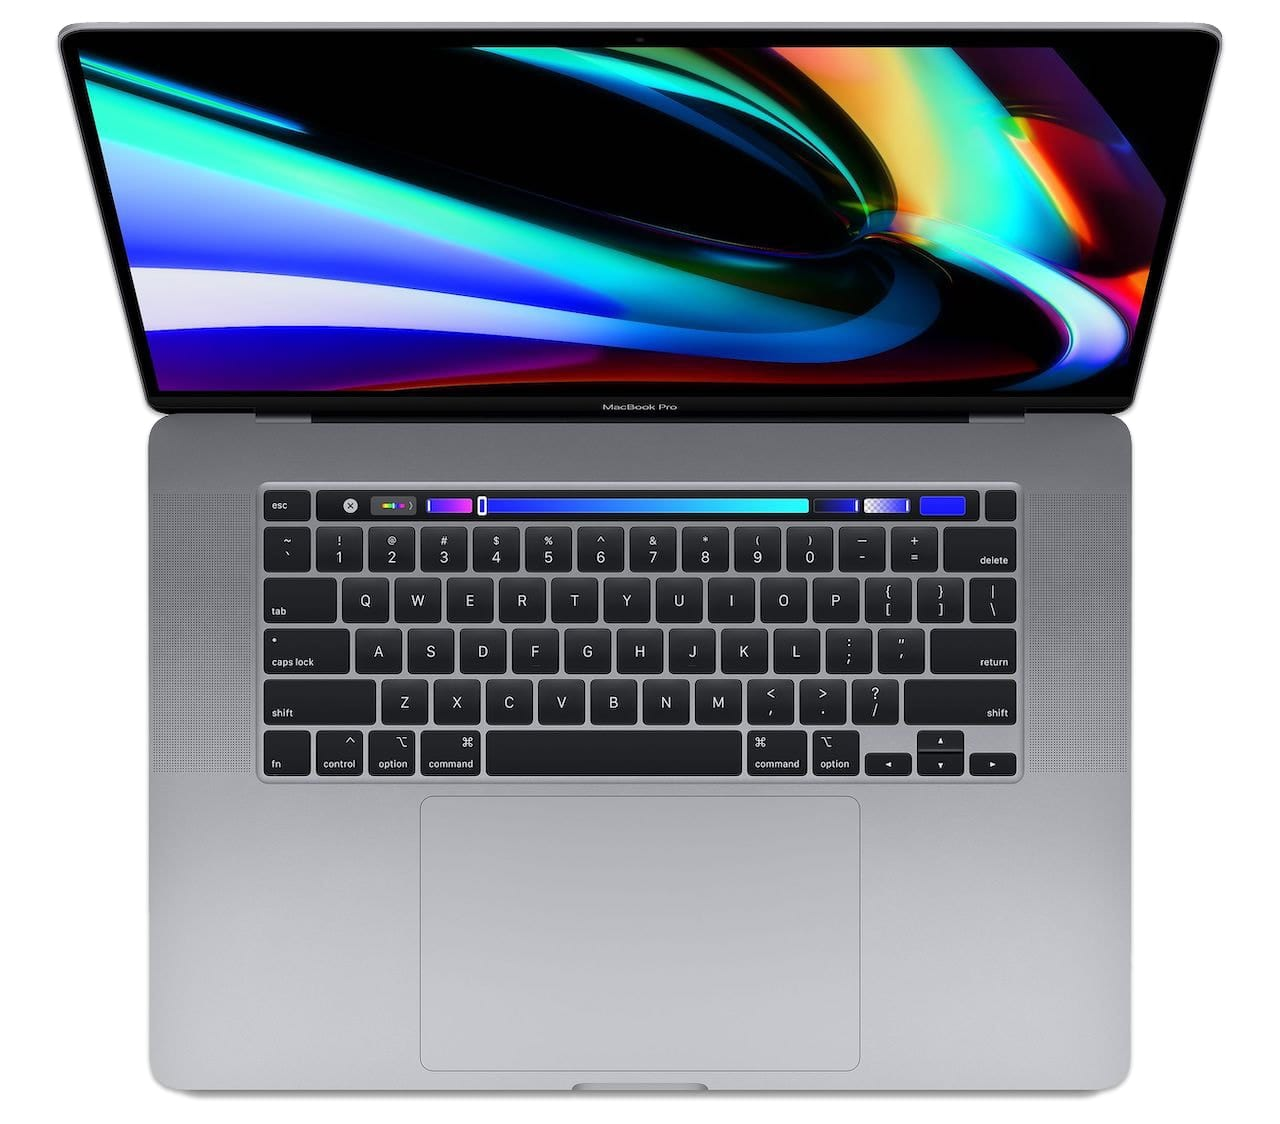 The new Apple 16-inch MacBook Pro